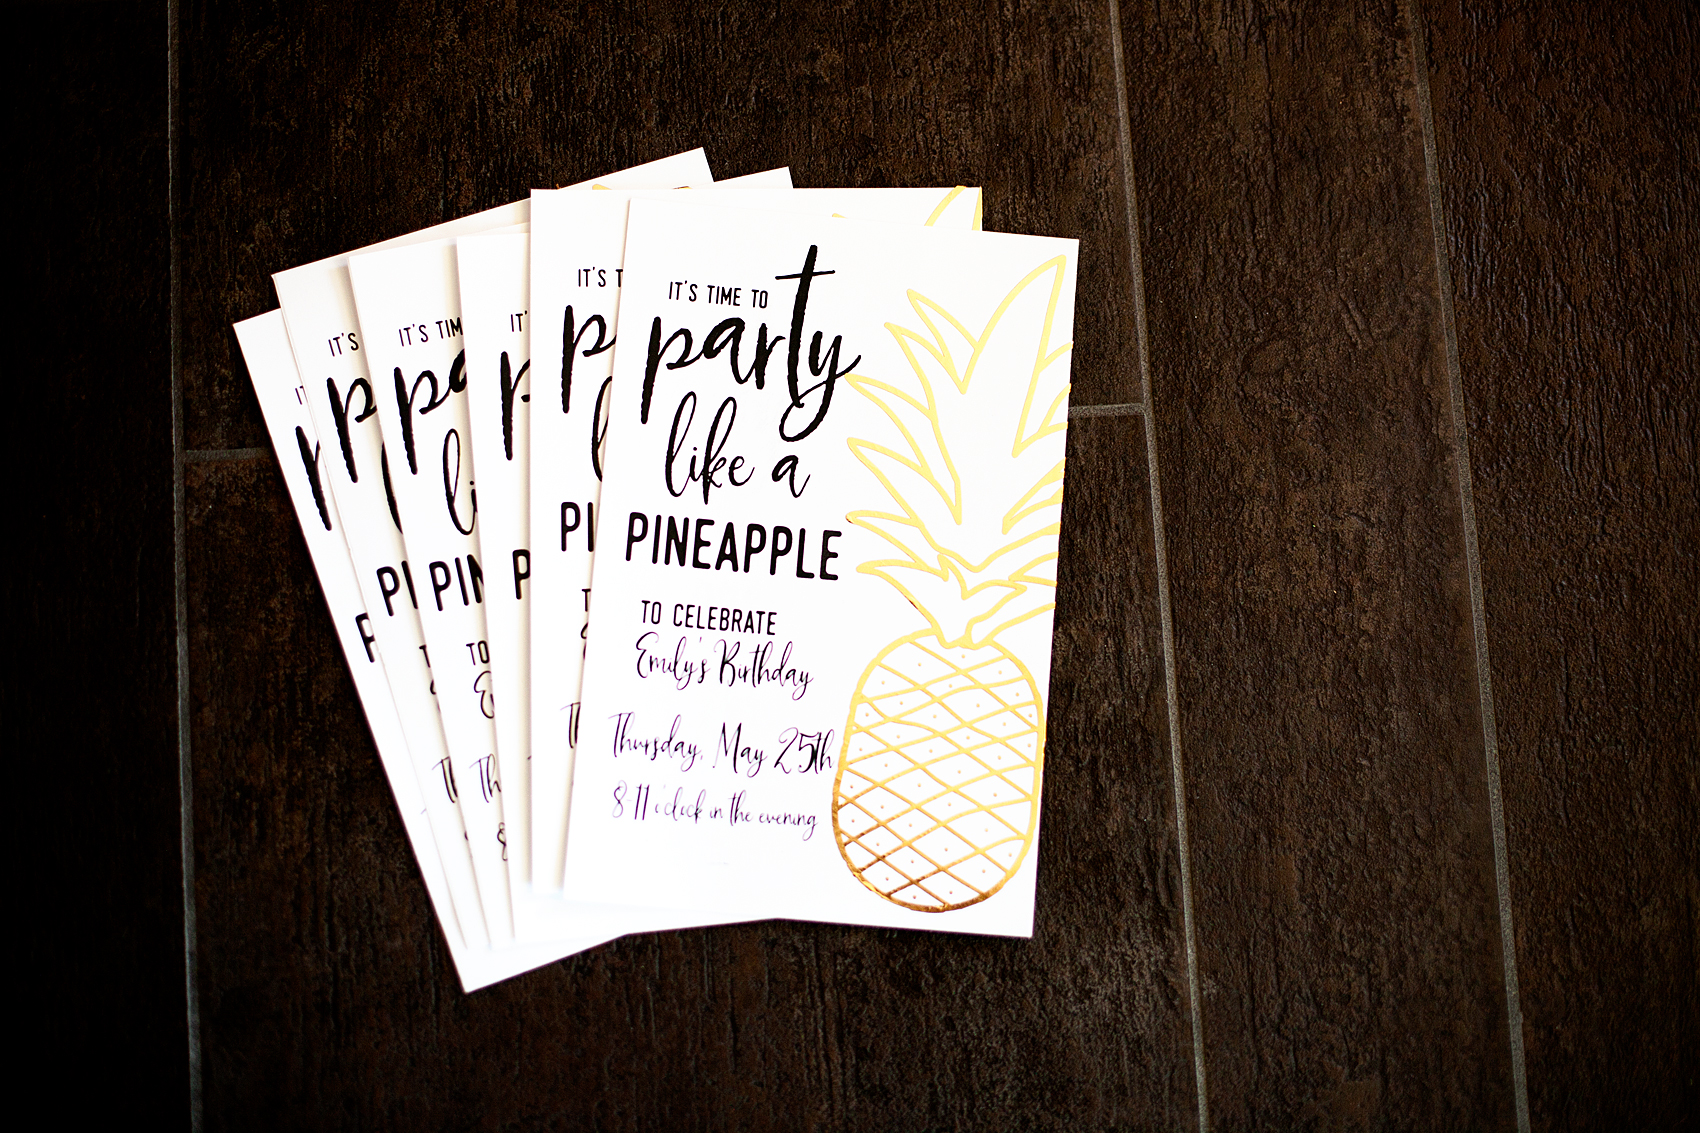 Pineapple Party Birthday Invitations • Who doesn't love a whimsical and tasty party? This Pineapple Party is perfect for all ages. Come on over to WhipperBerry to learn how to recreate this EASY party!